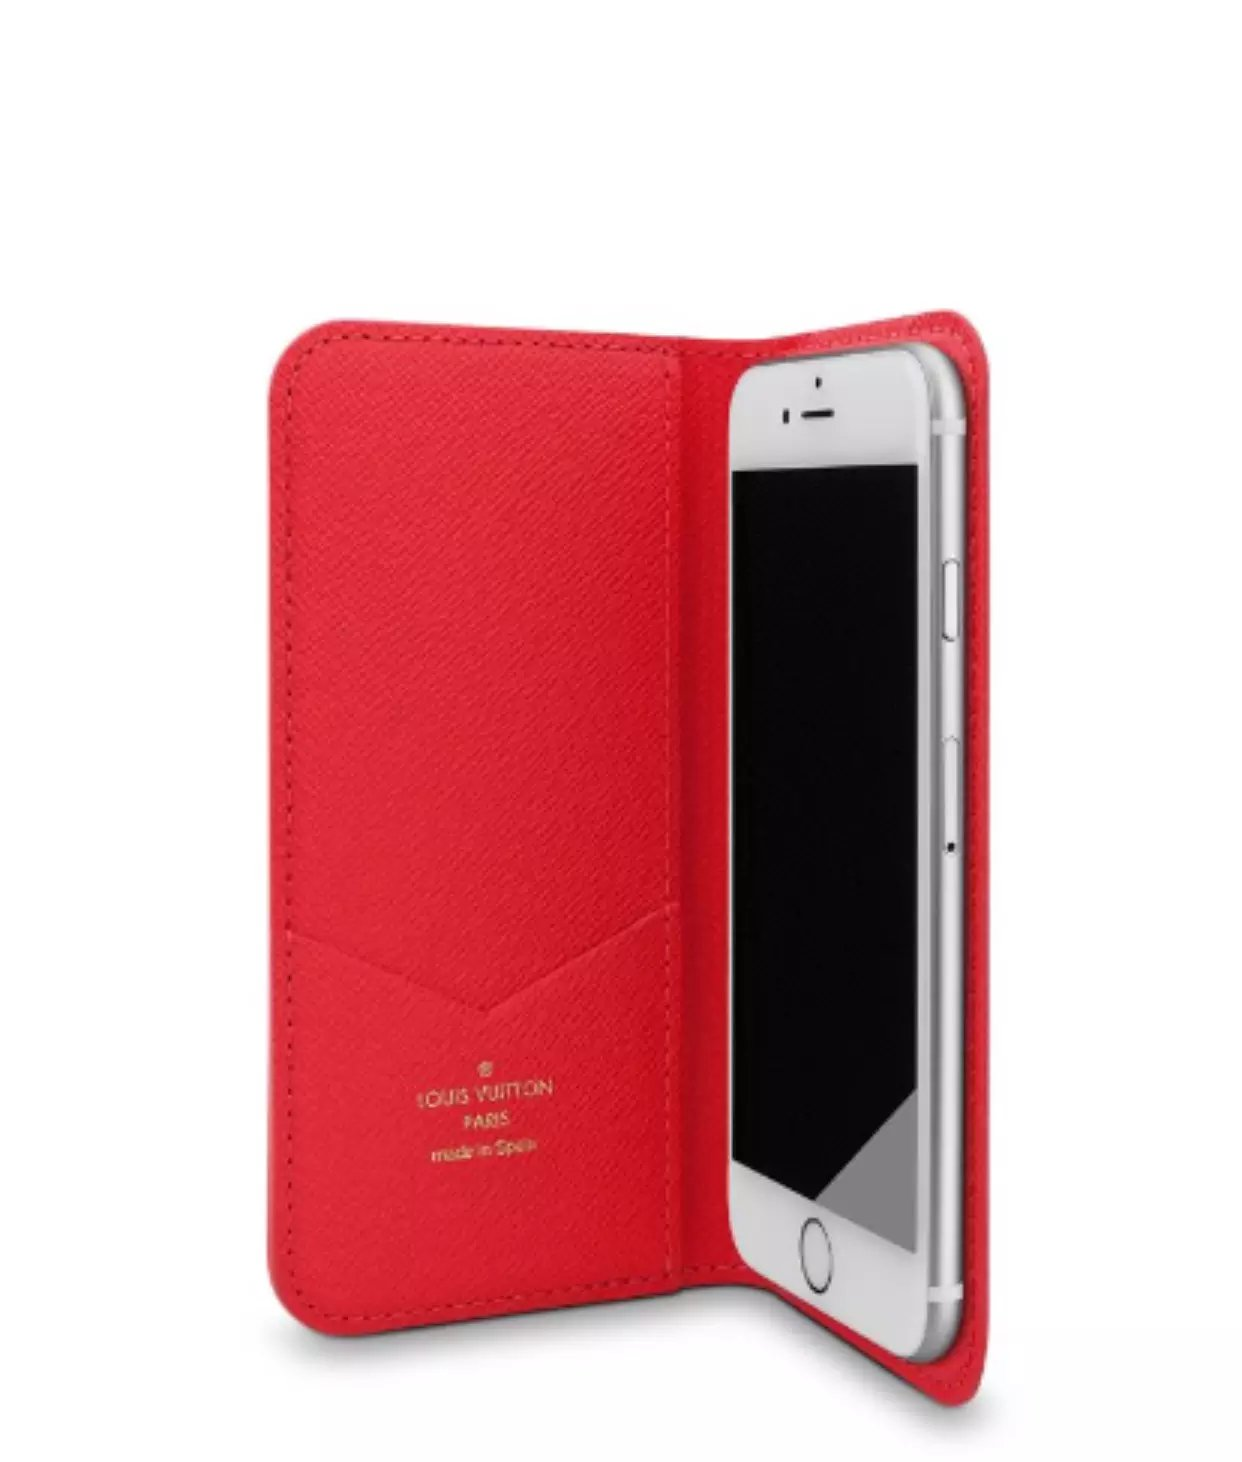 iphone hülle selbst iphone hüllen bestellen Louis Vuitton iphone 8 Plus hüllen handy foto cover wie viel kostet iphone 8 Plus handyhülle für iphone 3 iphone 8 Plus E hülle iphone 8 Plus kappen handyhüllen bestellen